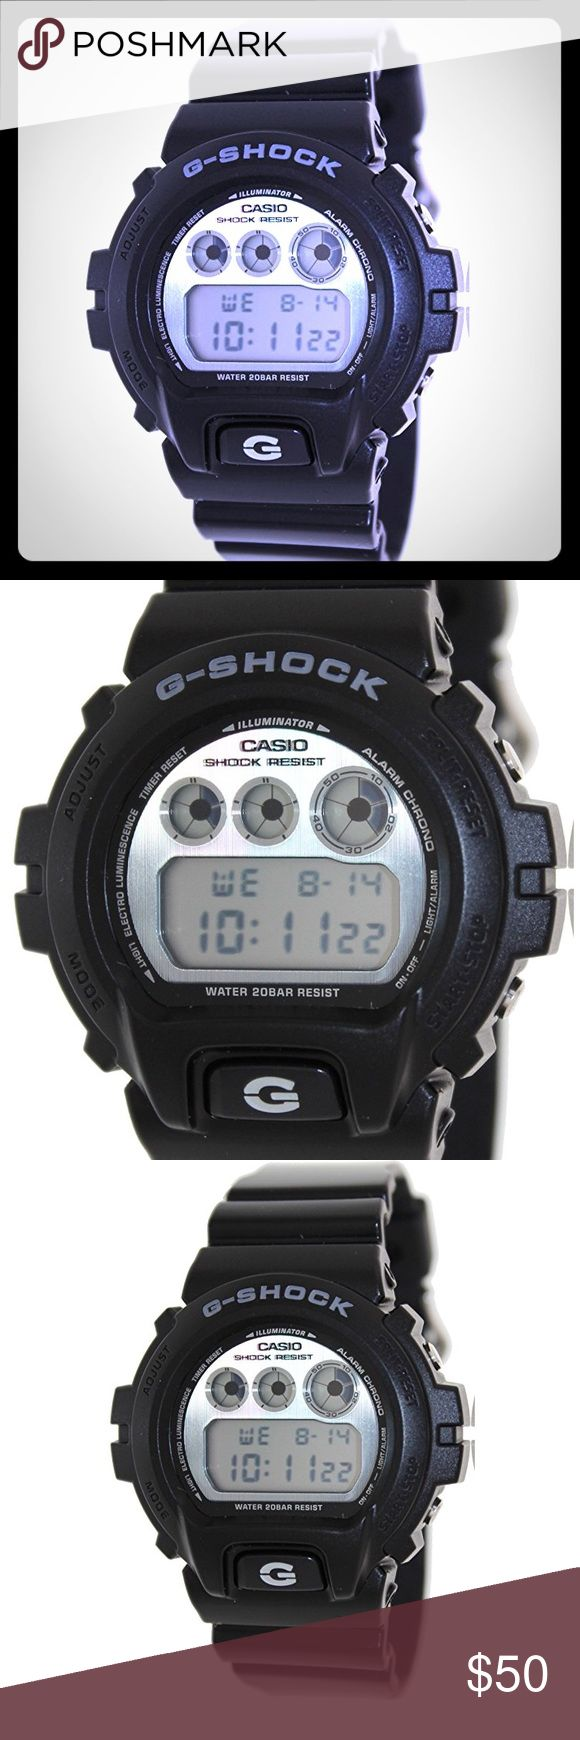 G-Shock Watch in All Black G-SHOCK The DW6900 Watch in Black. Digital watch with resin band; LED light; 200M water resistant; shock resistant; calender; world time. By G-Shock. G-Shock Accessories Watches